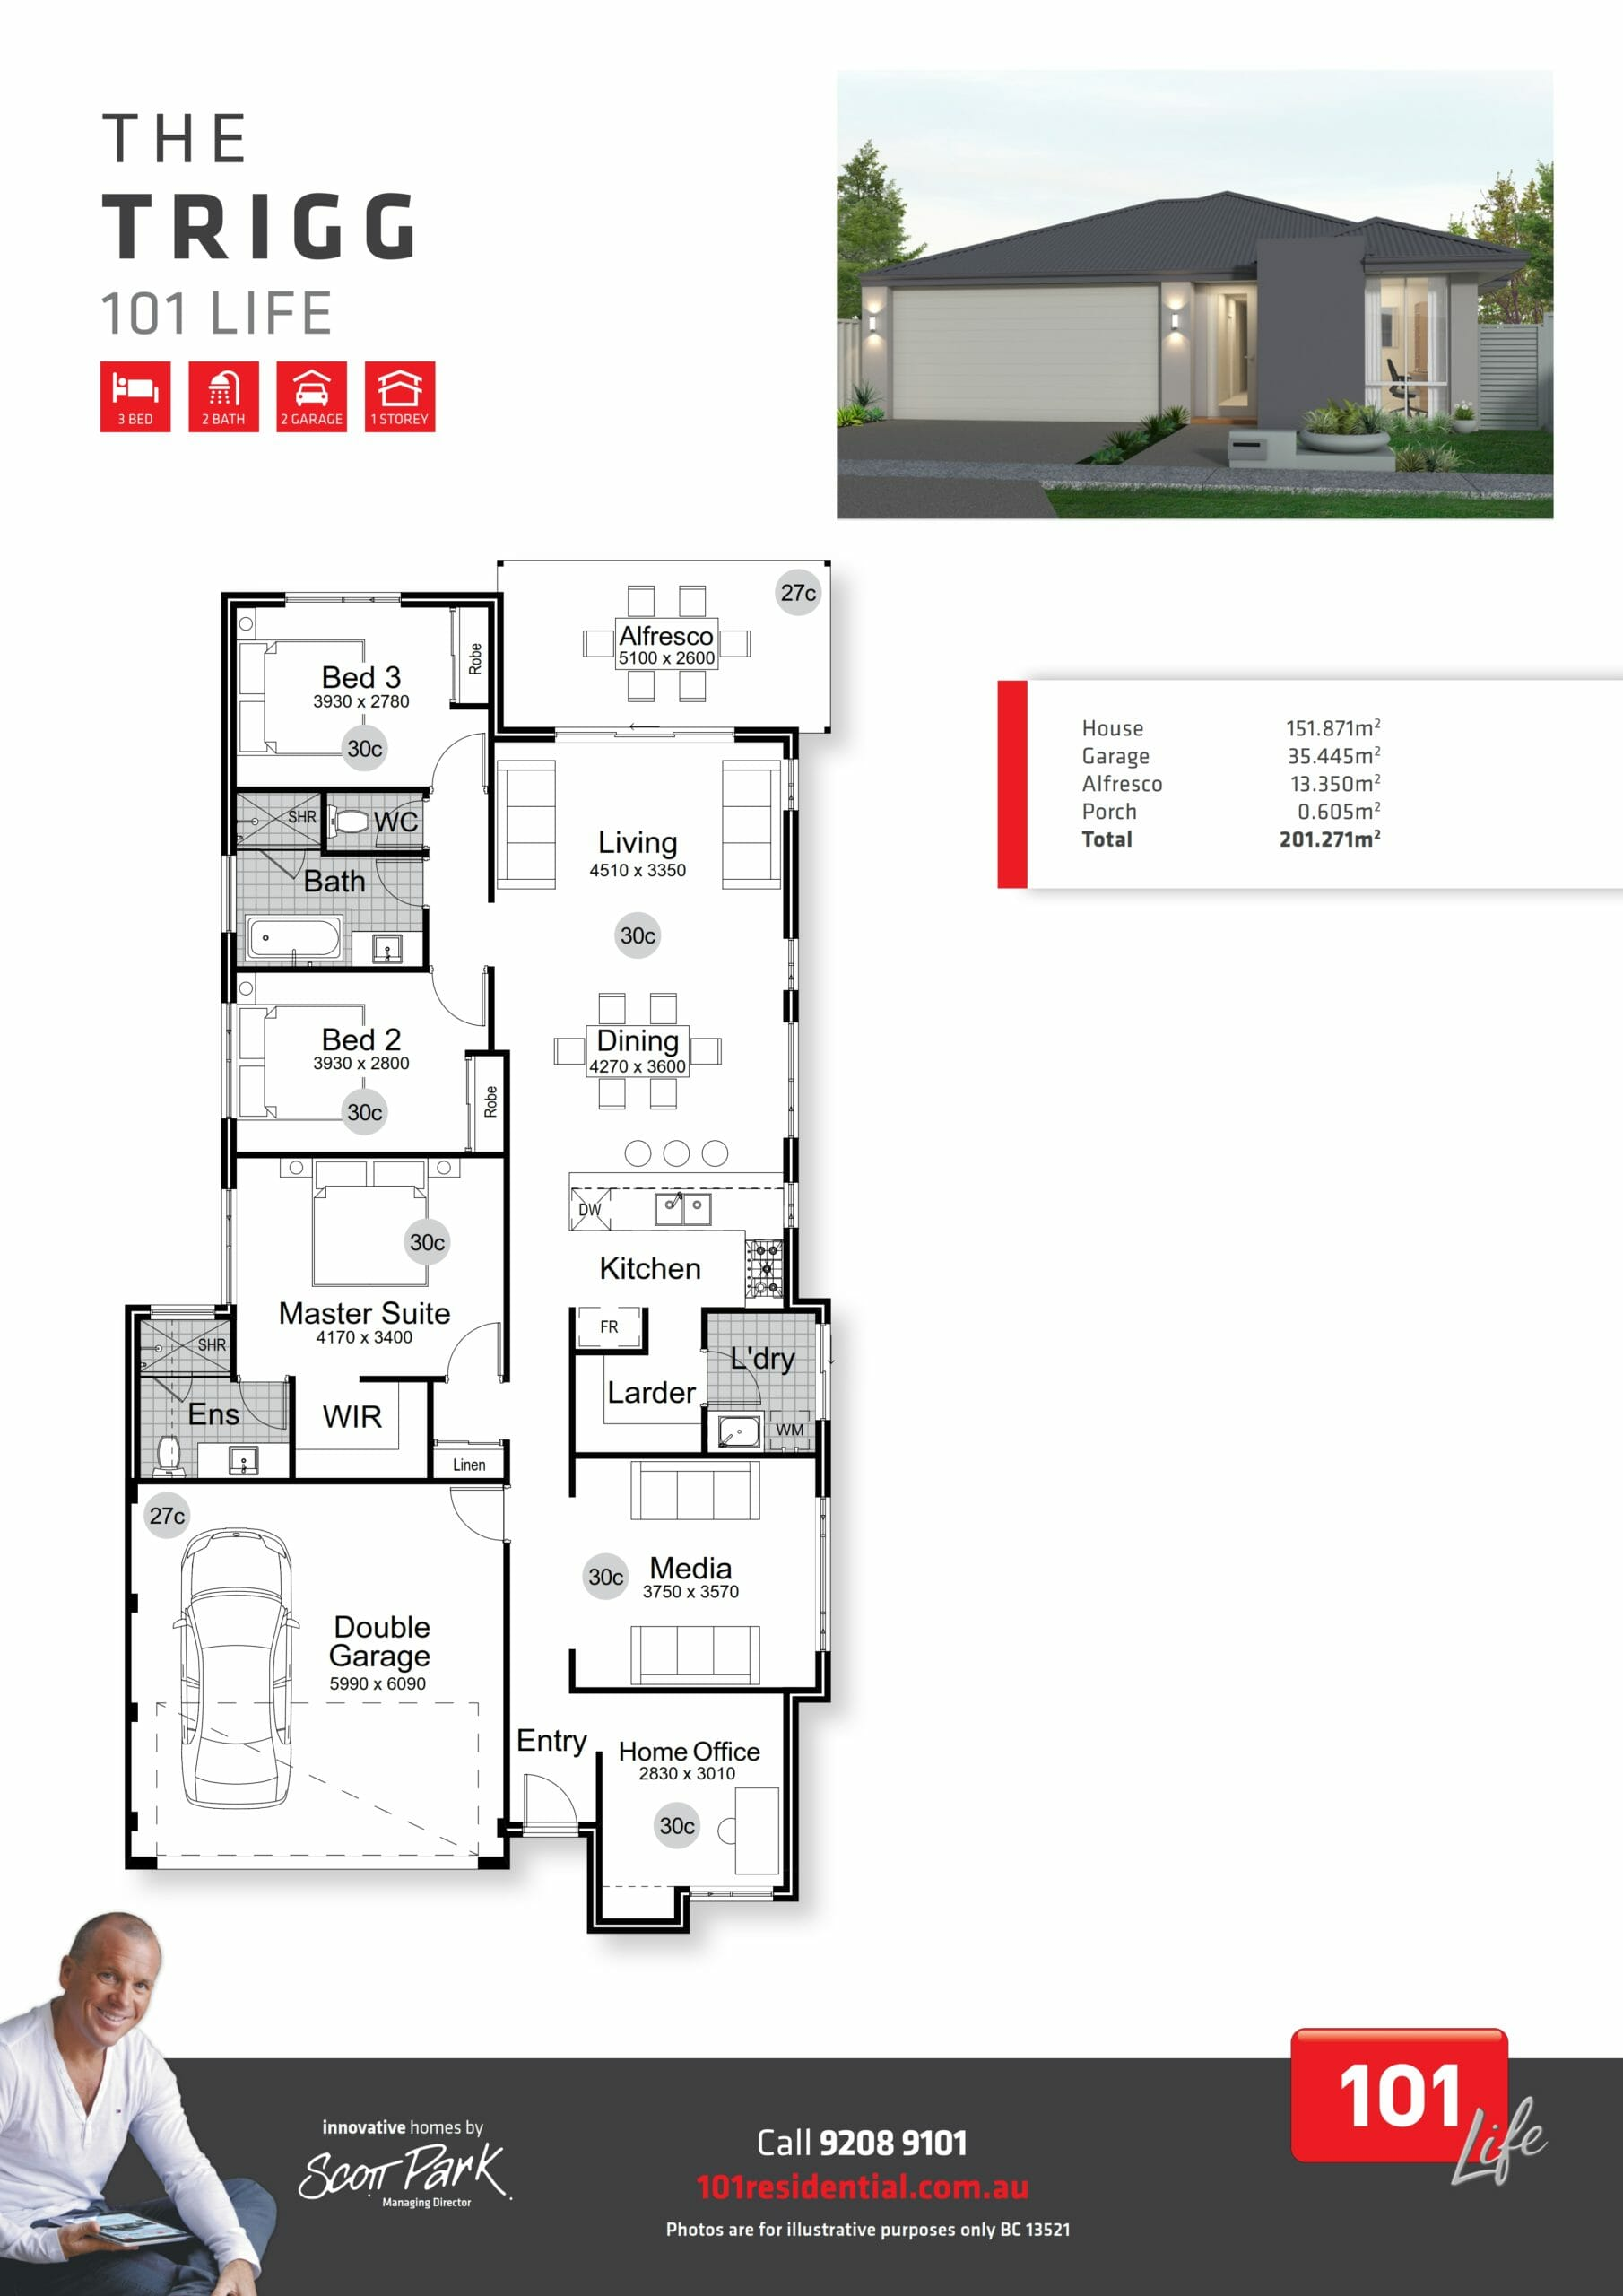 101 A3 Floor Plan - Trigg WEB_001